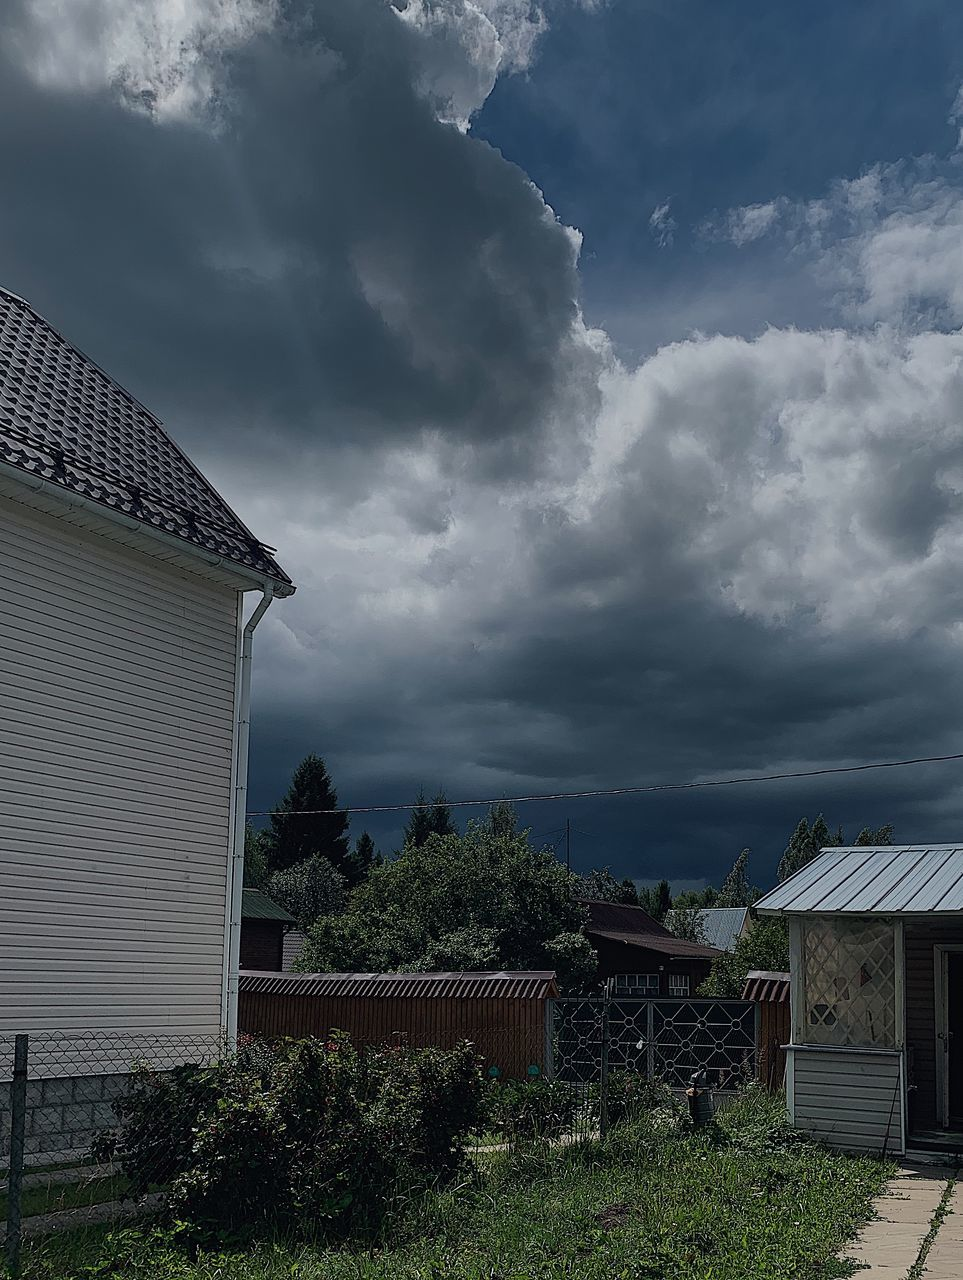 cloud - sky, architecture, building exterior, built structure, sky, building, house, nature, roof, plant, no people, day, tree, residential district, outdoors, storm cloud, storm, overcast, land, ominous, roof tile